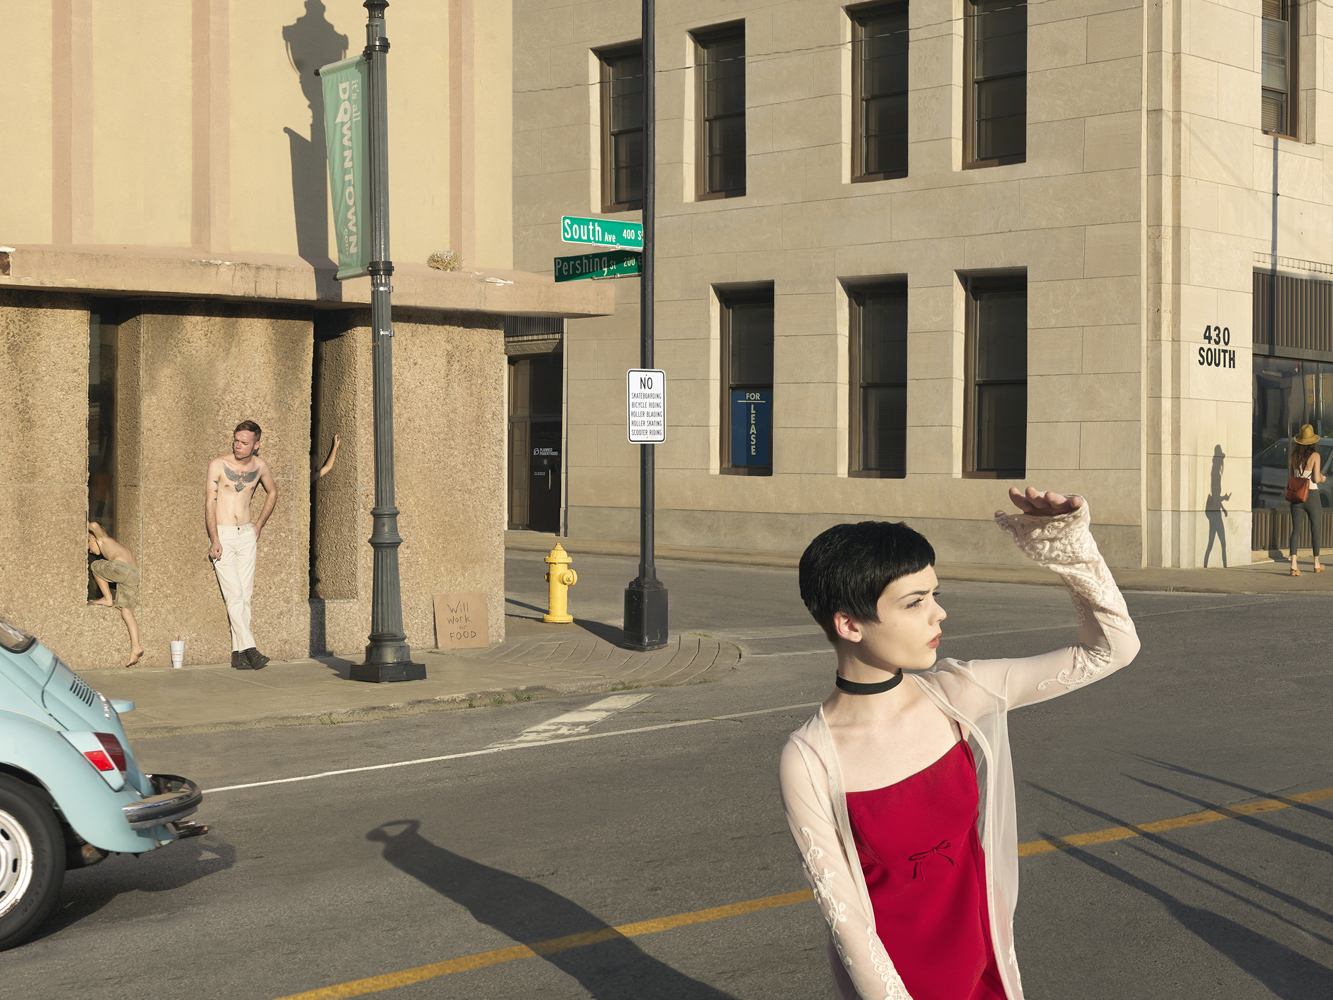 Julie Blackmon, South & Pershing, 2017, 22×30″, 32×44″, 40×56″ editions of 10, 7, 5, price on request